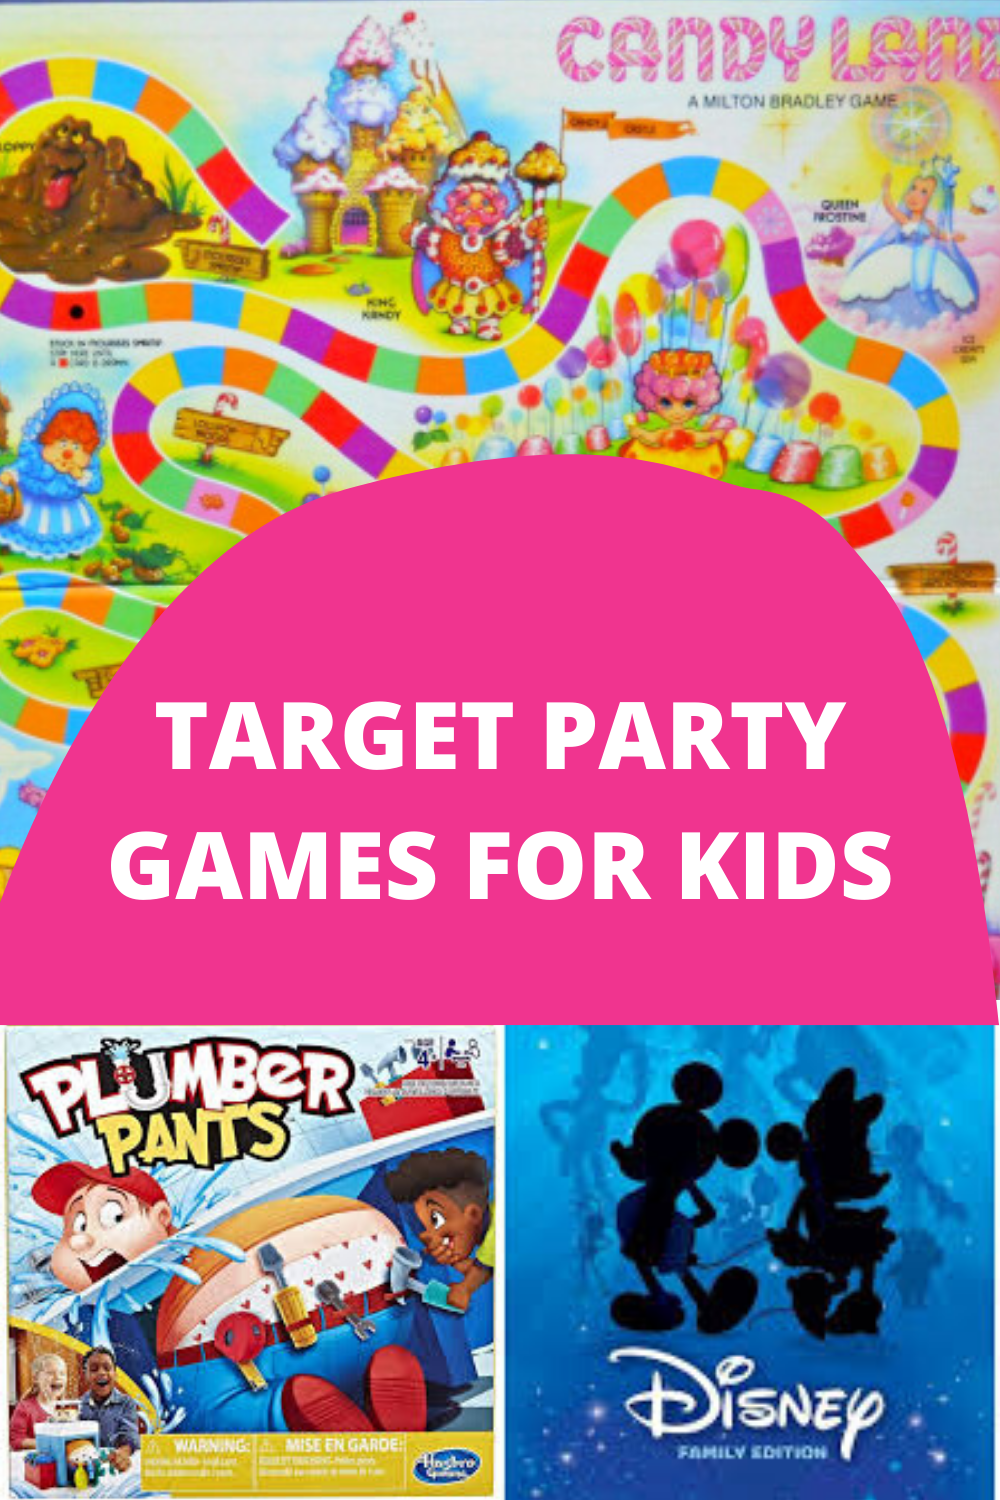 Target Party Games for Kids